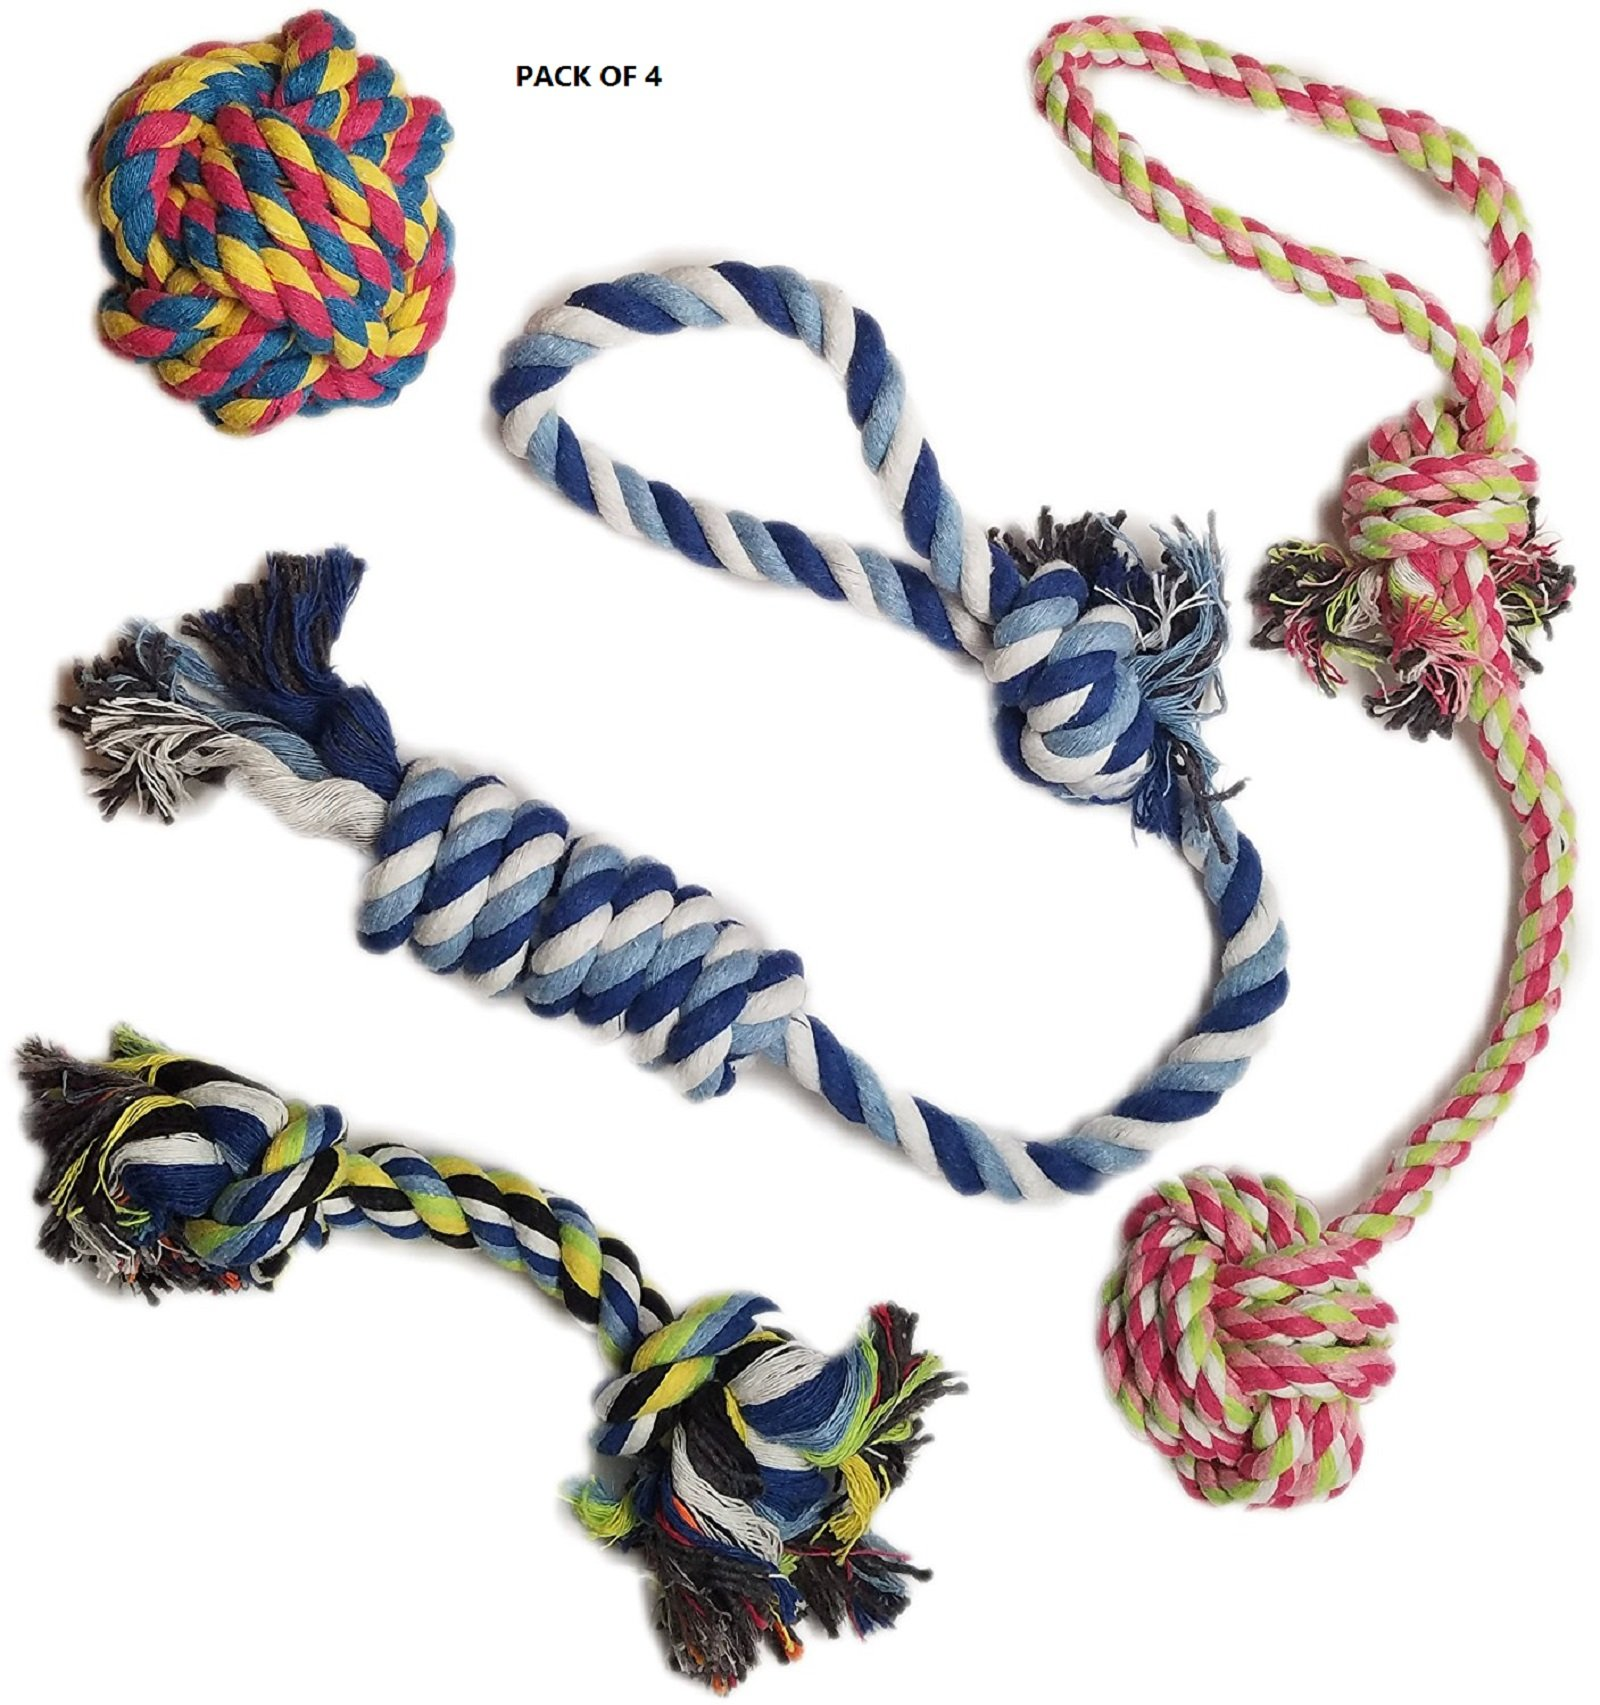 ixaer Pet Chew Toys, Set of 4 Pets Puppy Dog Pet Rope Toys For Small to Medium Dogs, Pets Puppy Dog Pet Rope Toys For Small to Medium Dogs